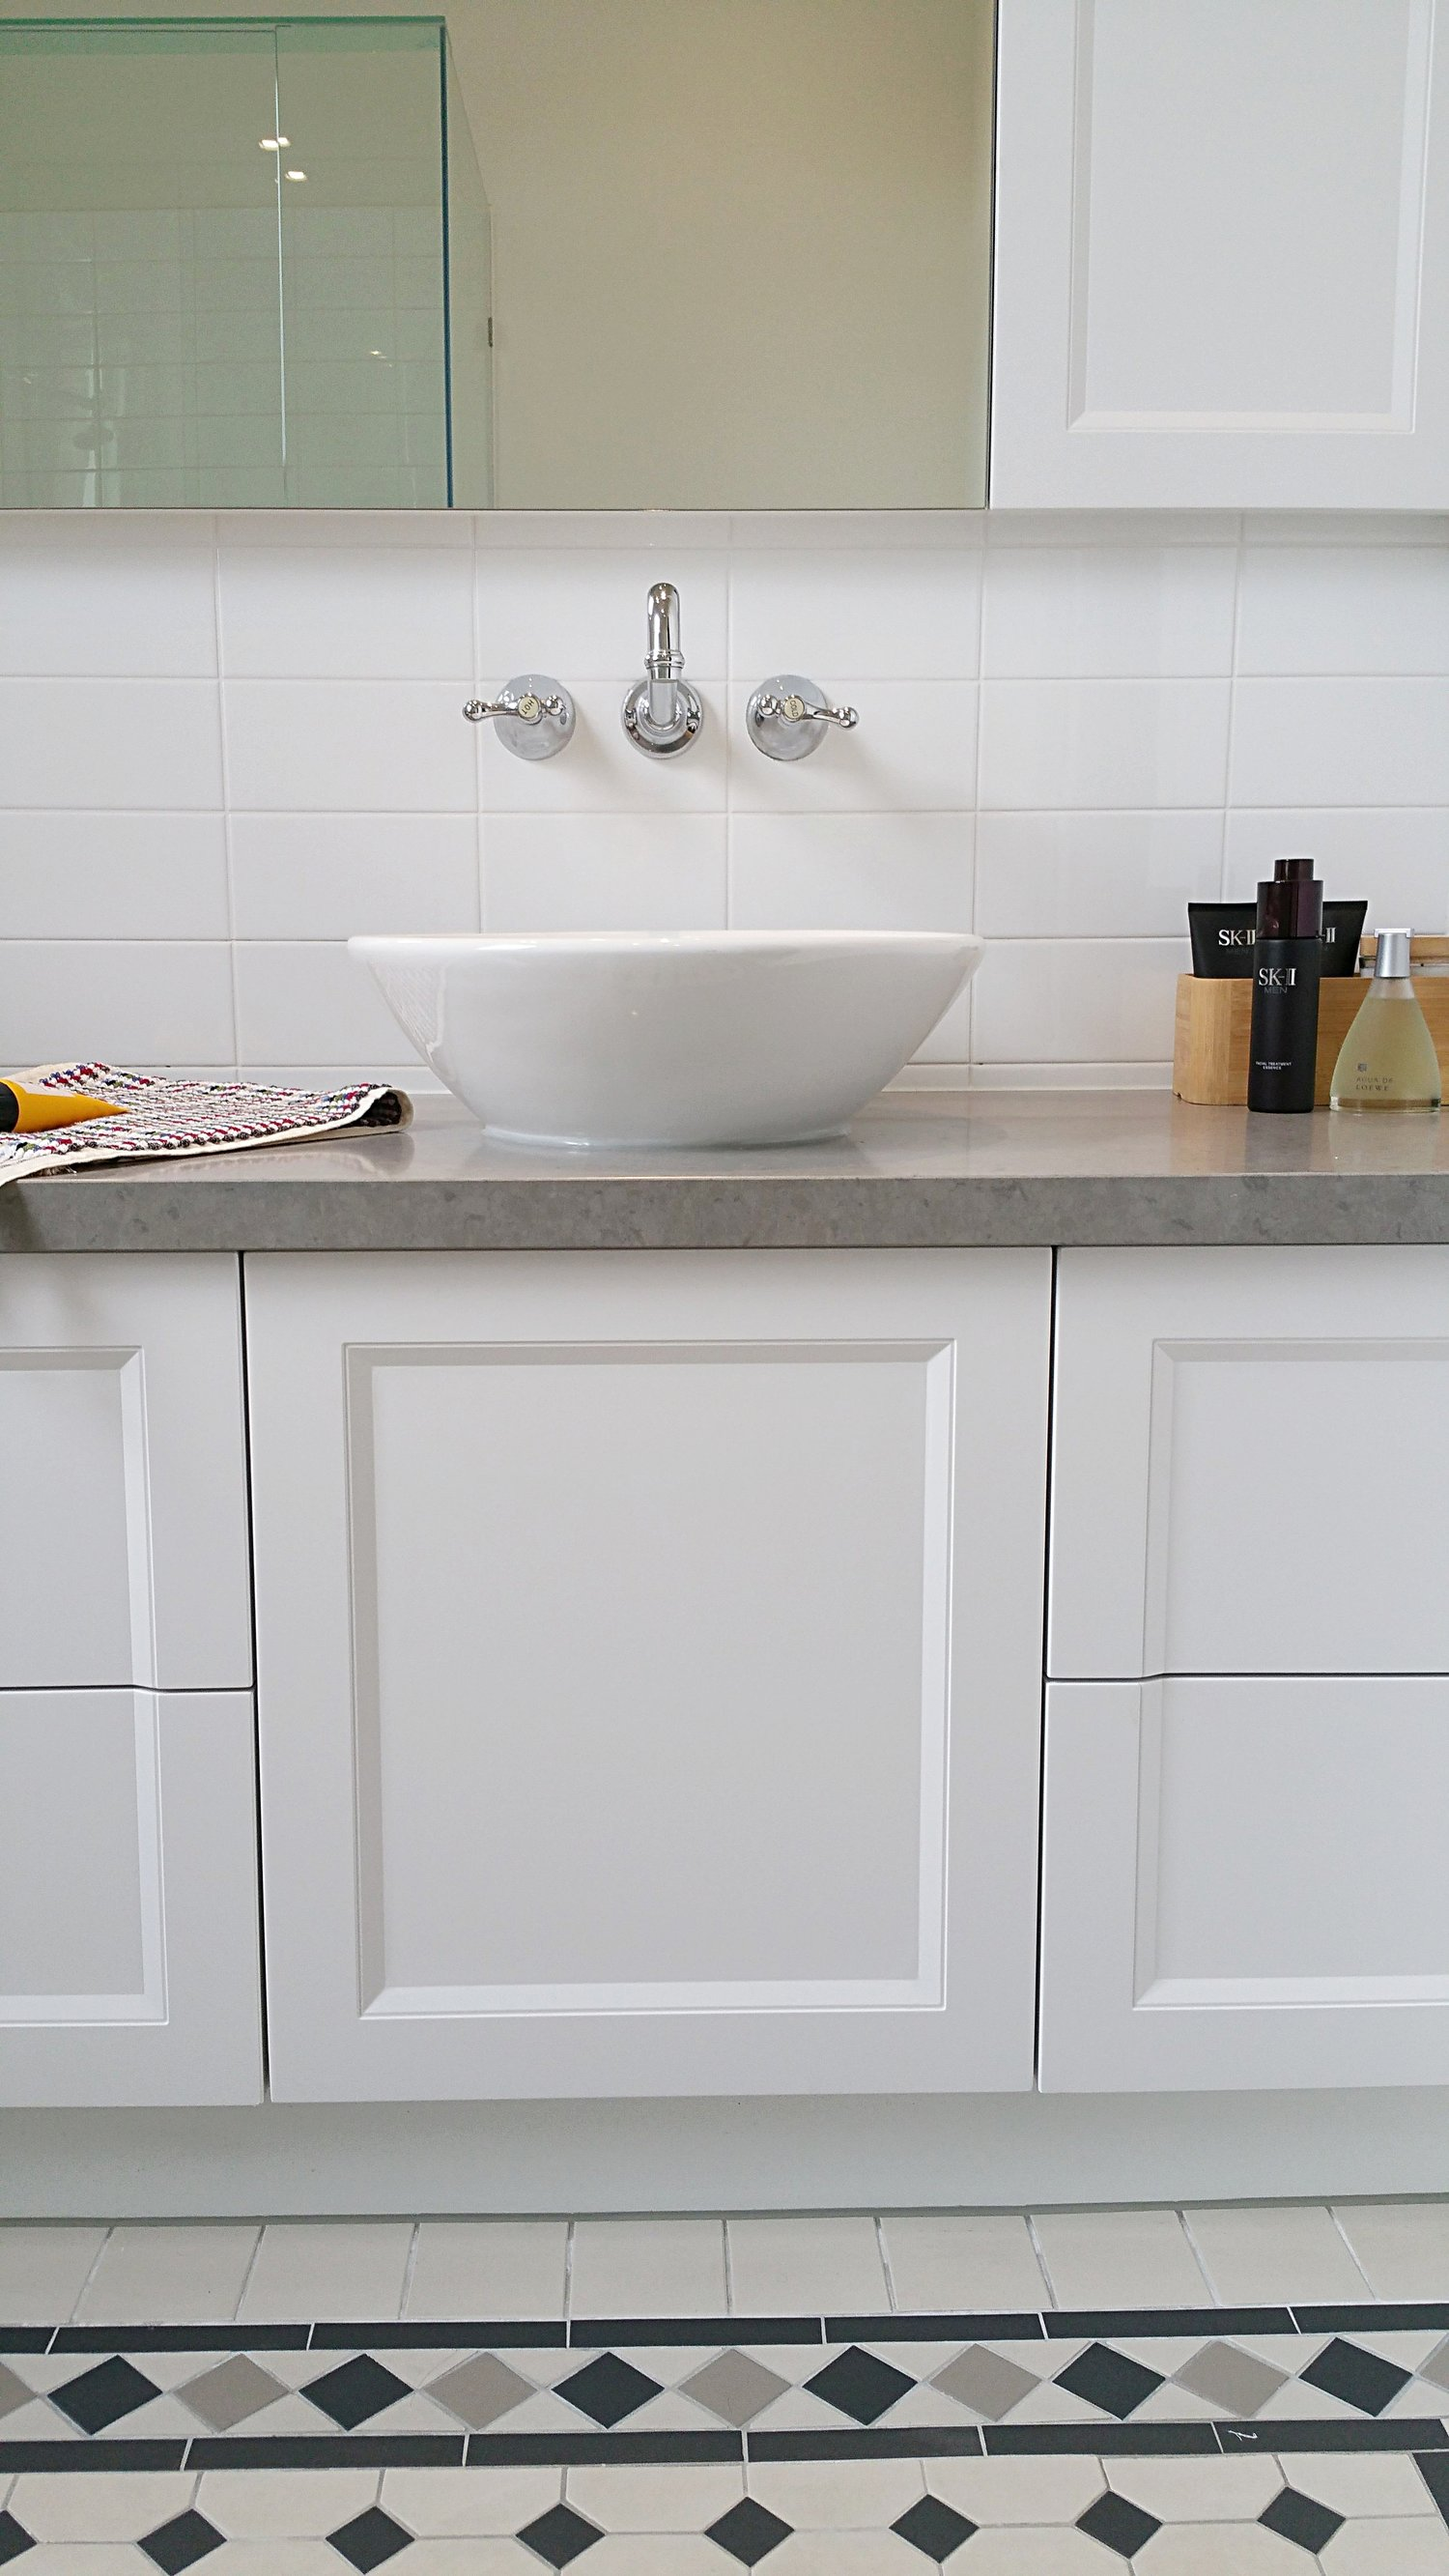 QUALITY FITTINGS - Brodware tapware, made in Australia to a high standard of quality, were selected so the bathrooms will last for this young busy family. Benchtops are stone, finishes are matte and colours are quiet to bring a sense of welcome calm to the everyday.